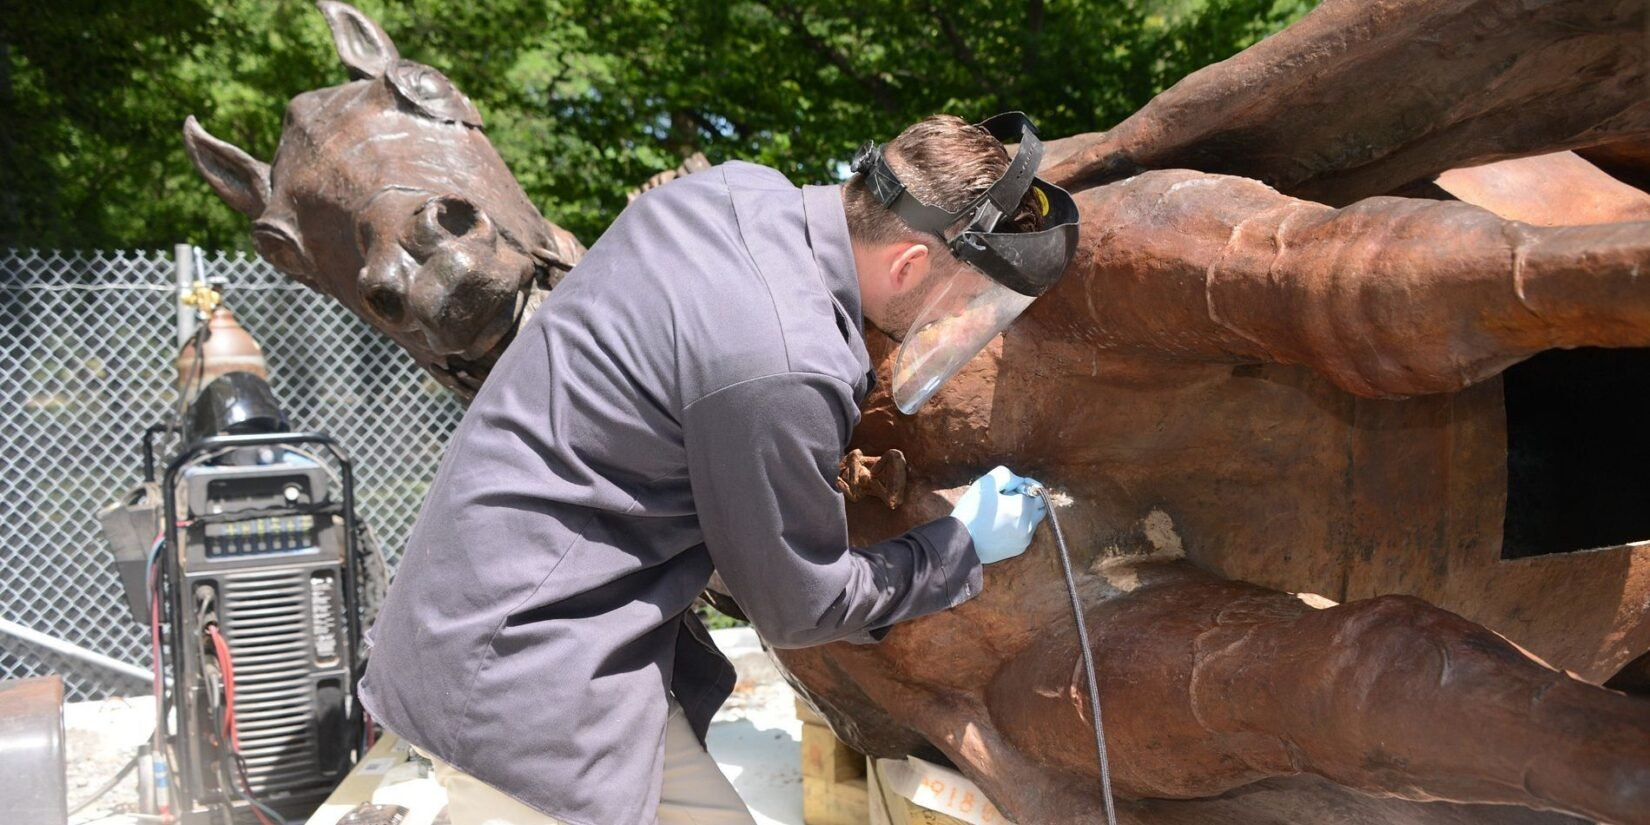 A welder works on the horse as the statue lays on one side.